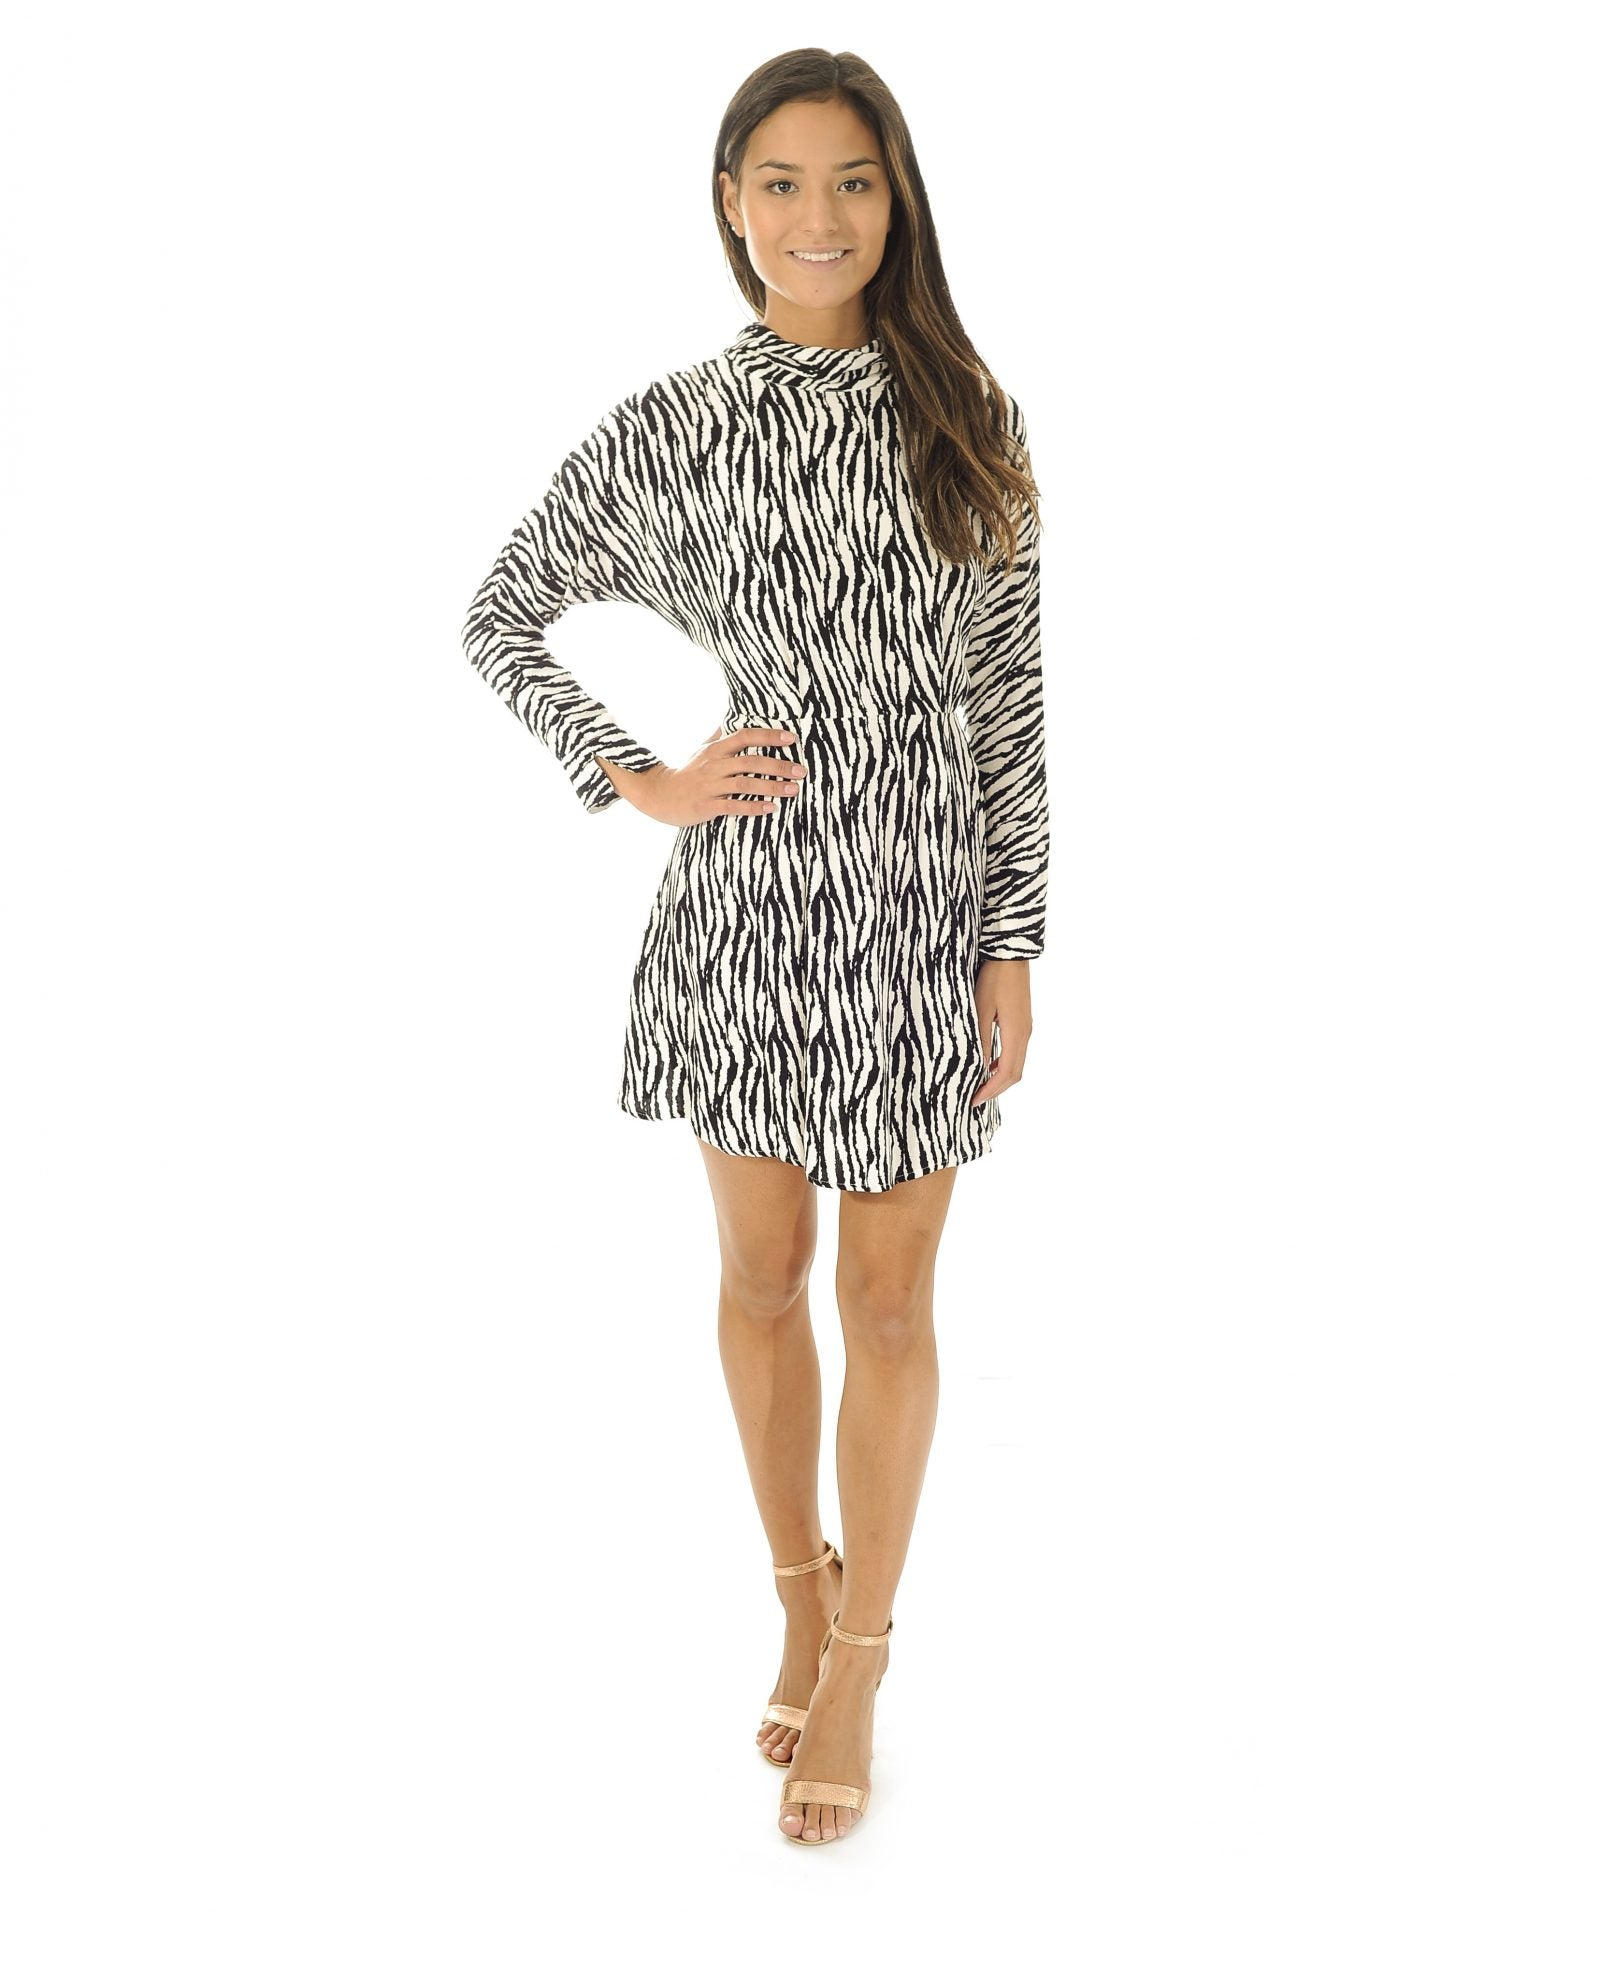 TOPSHOP ZEBRA STRIPE SKATER DRESS_AAA0850